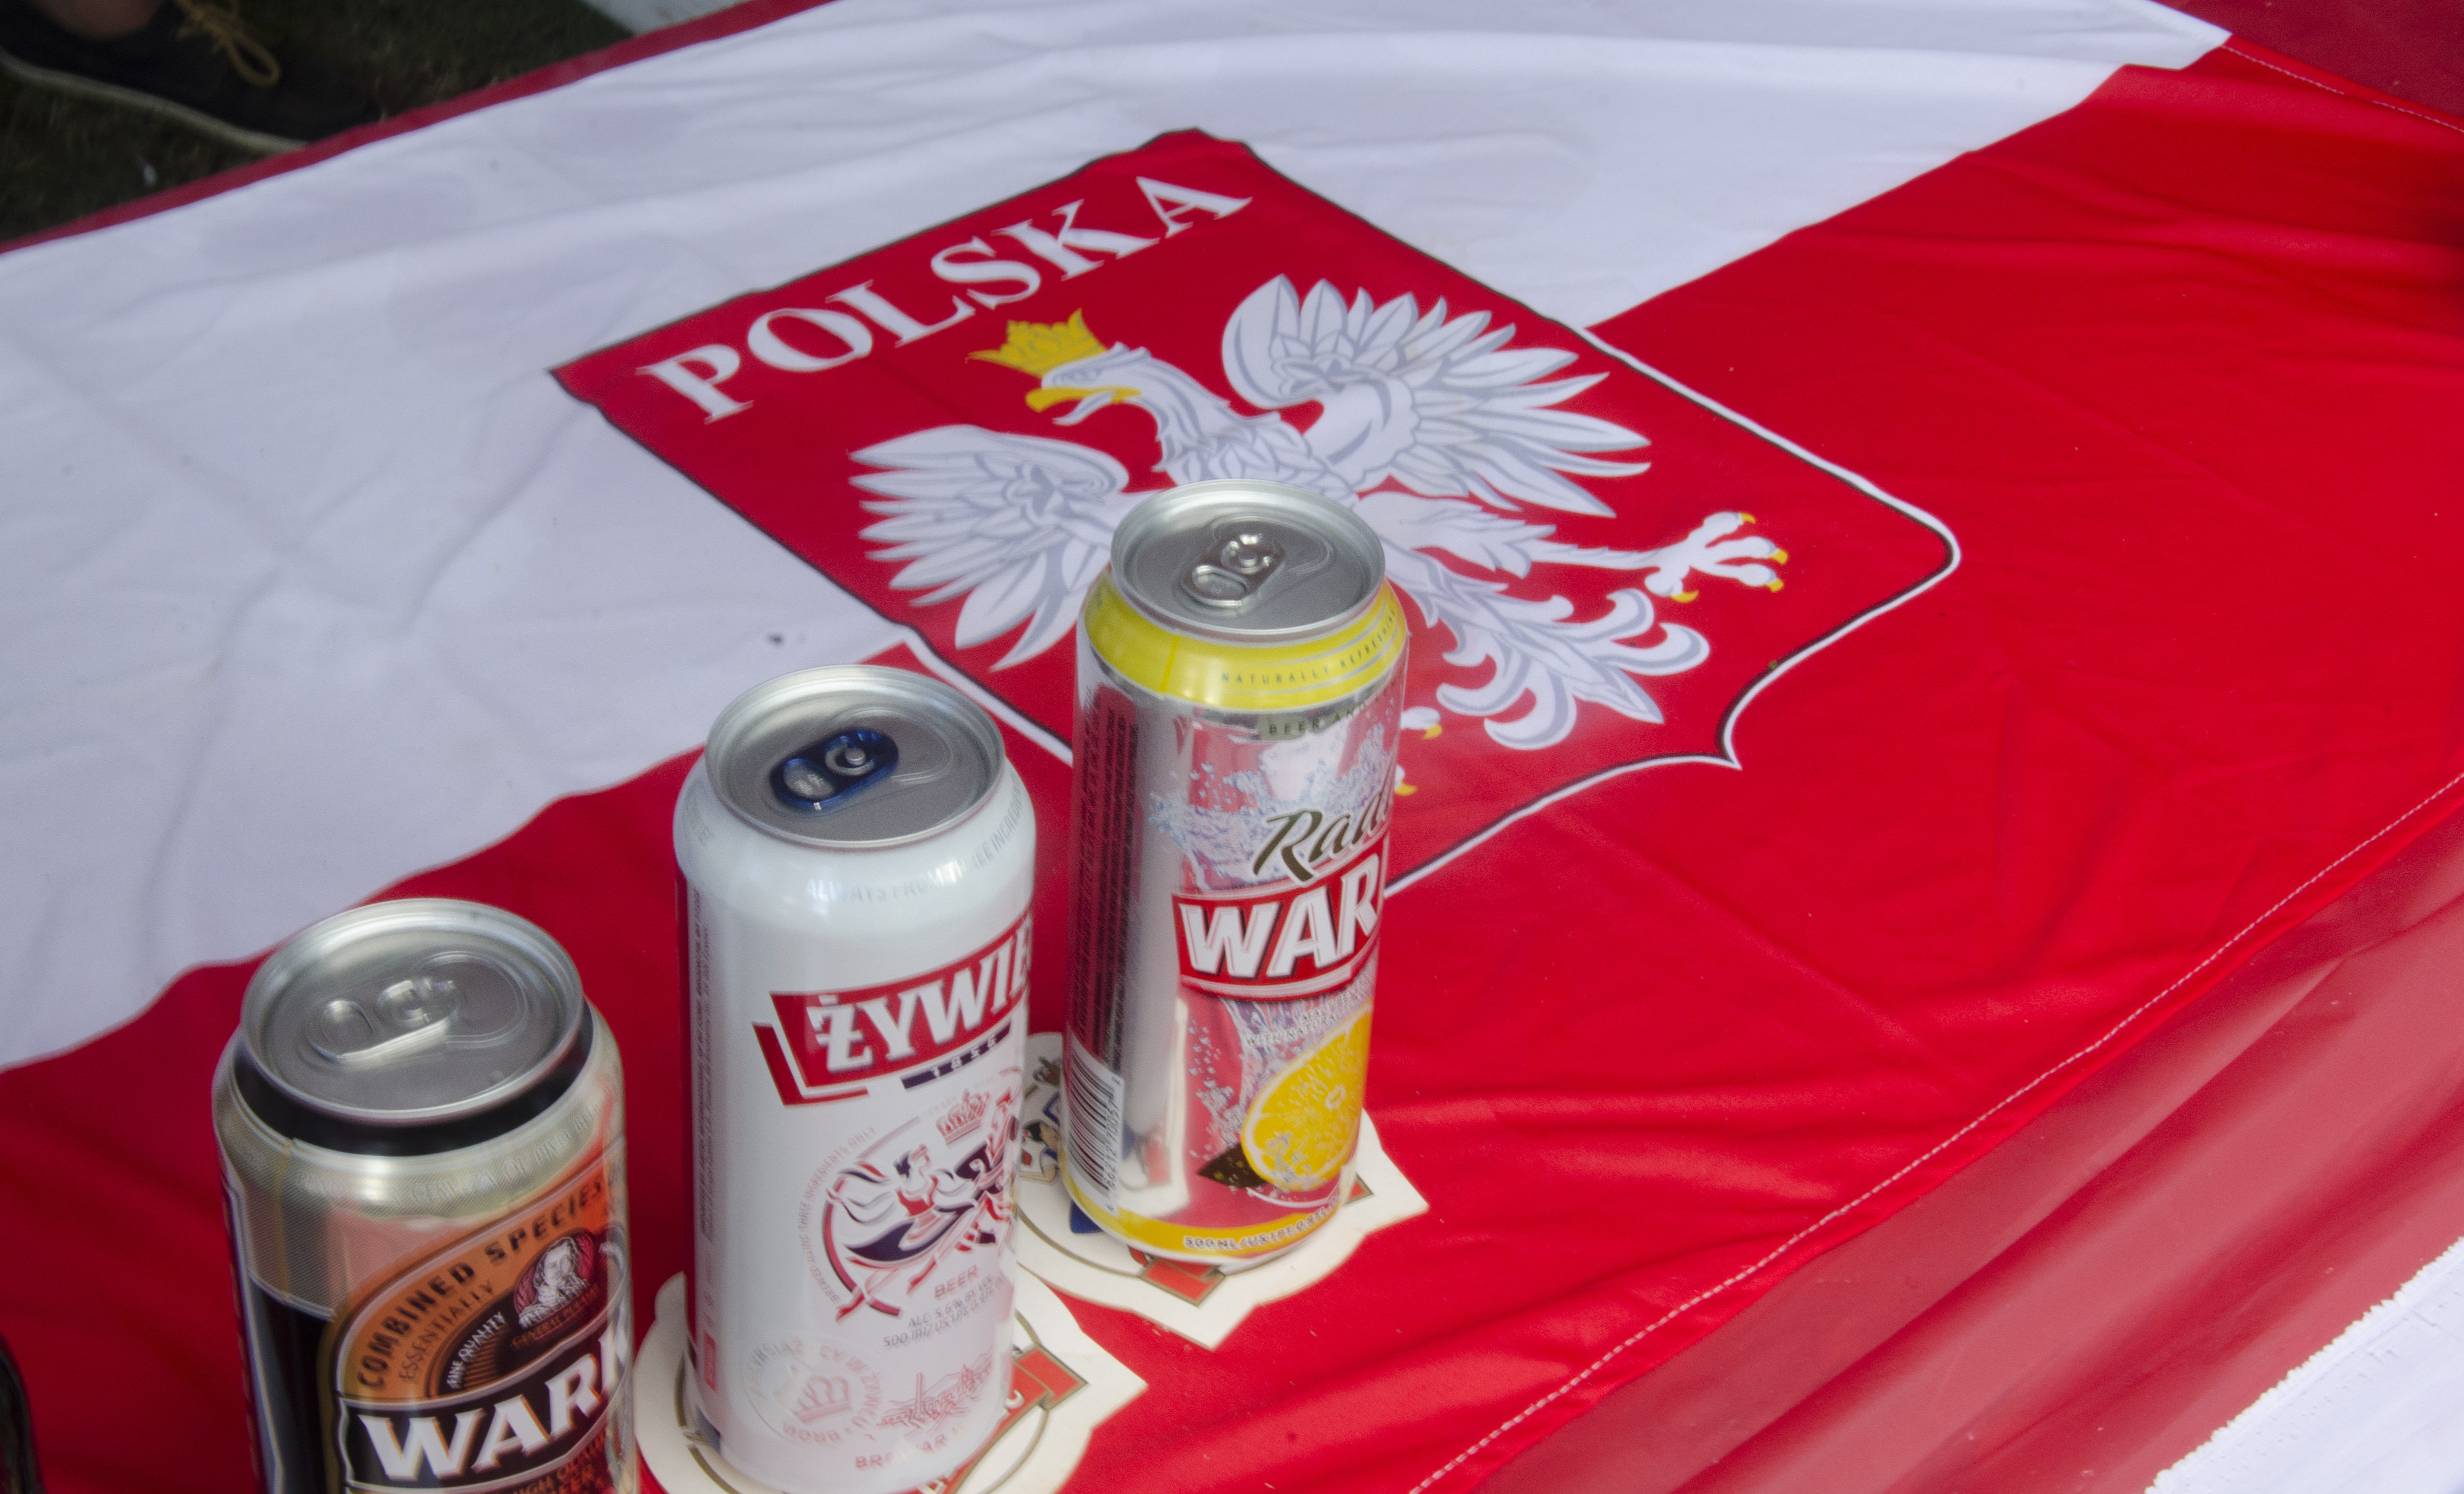 Polish Flag at International Cultural Festival